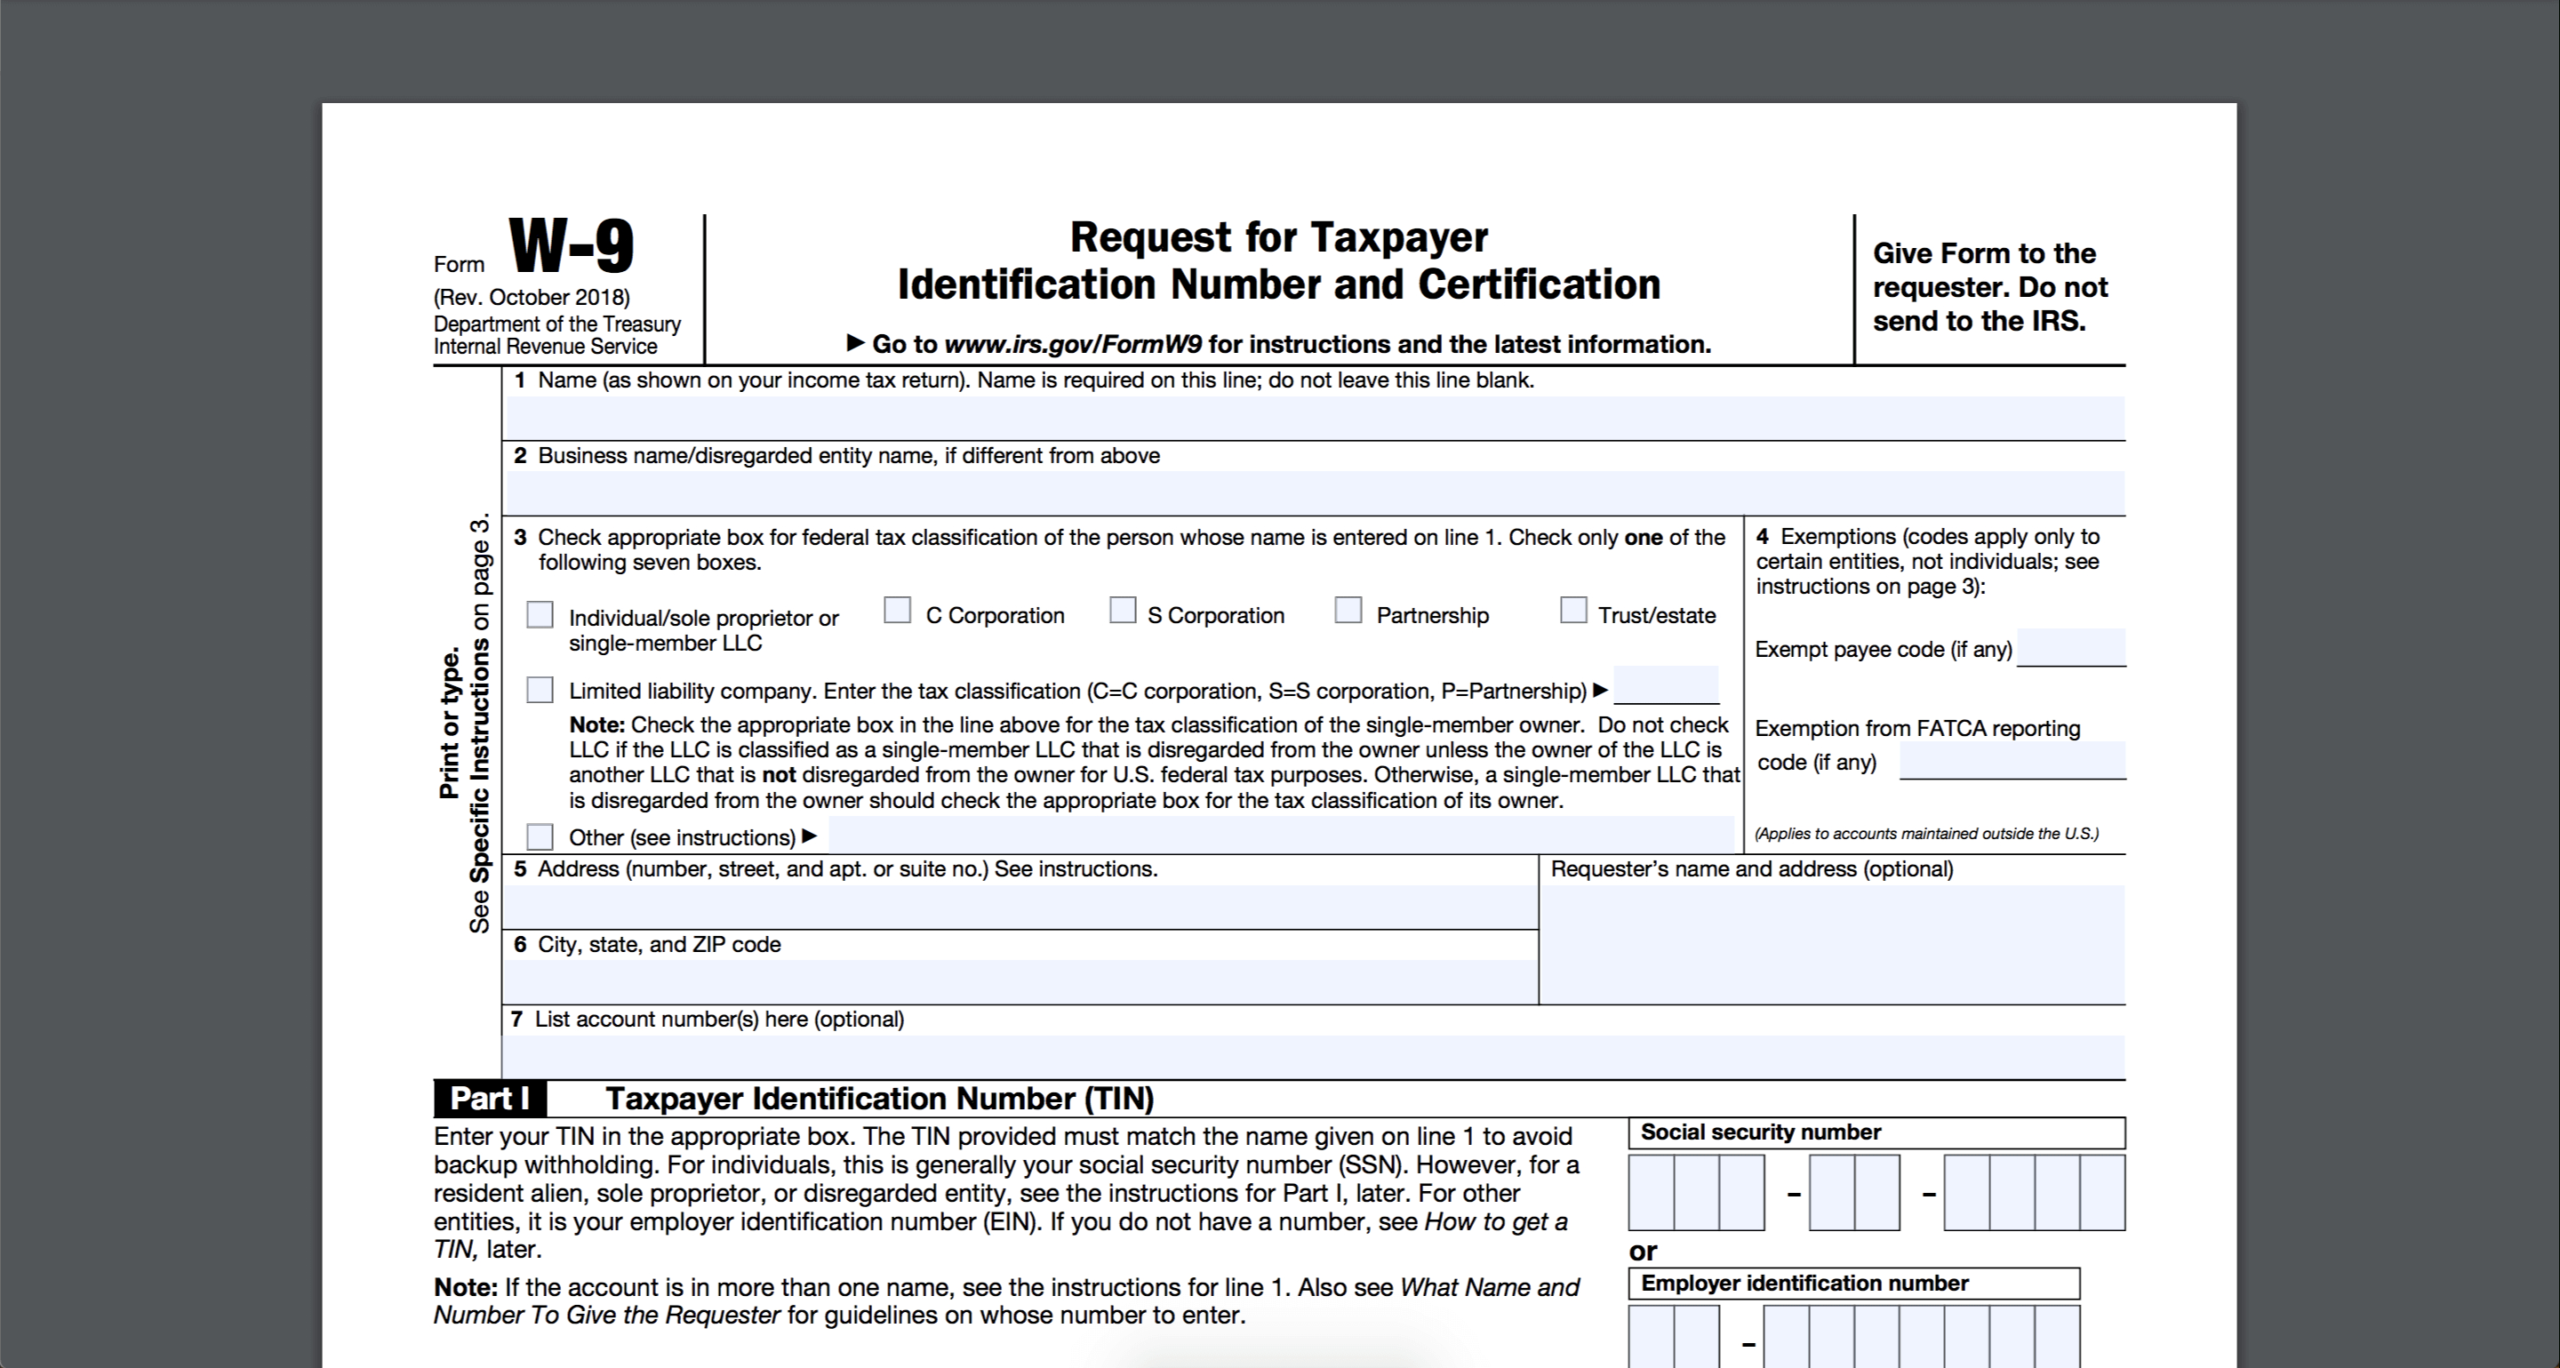 How To Fill Out And Sign Your W-9 Form Online regarding Irs W-9 Printable Form